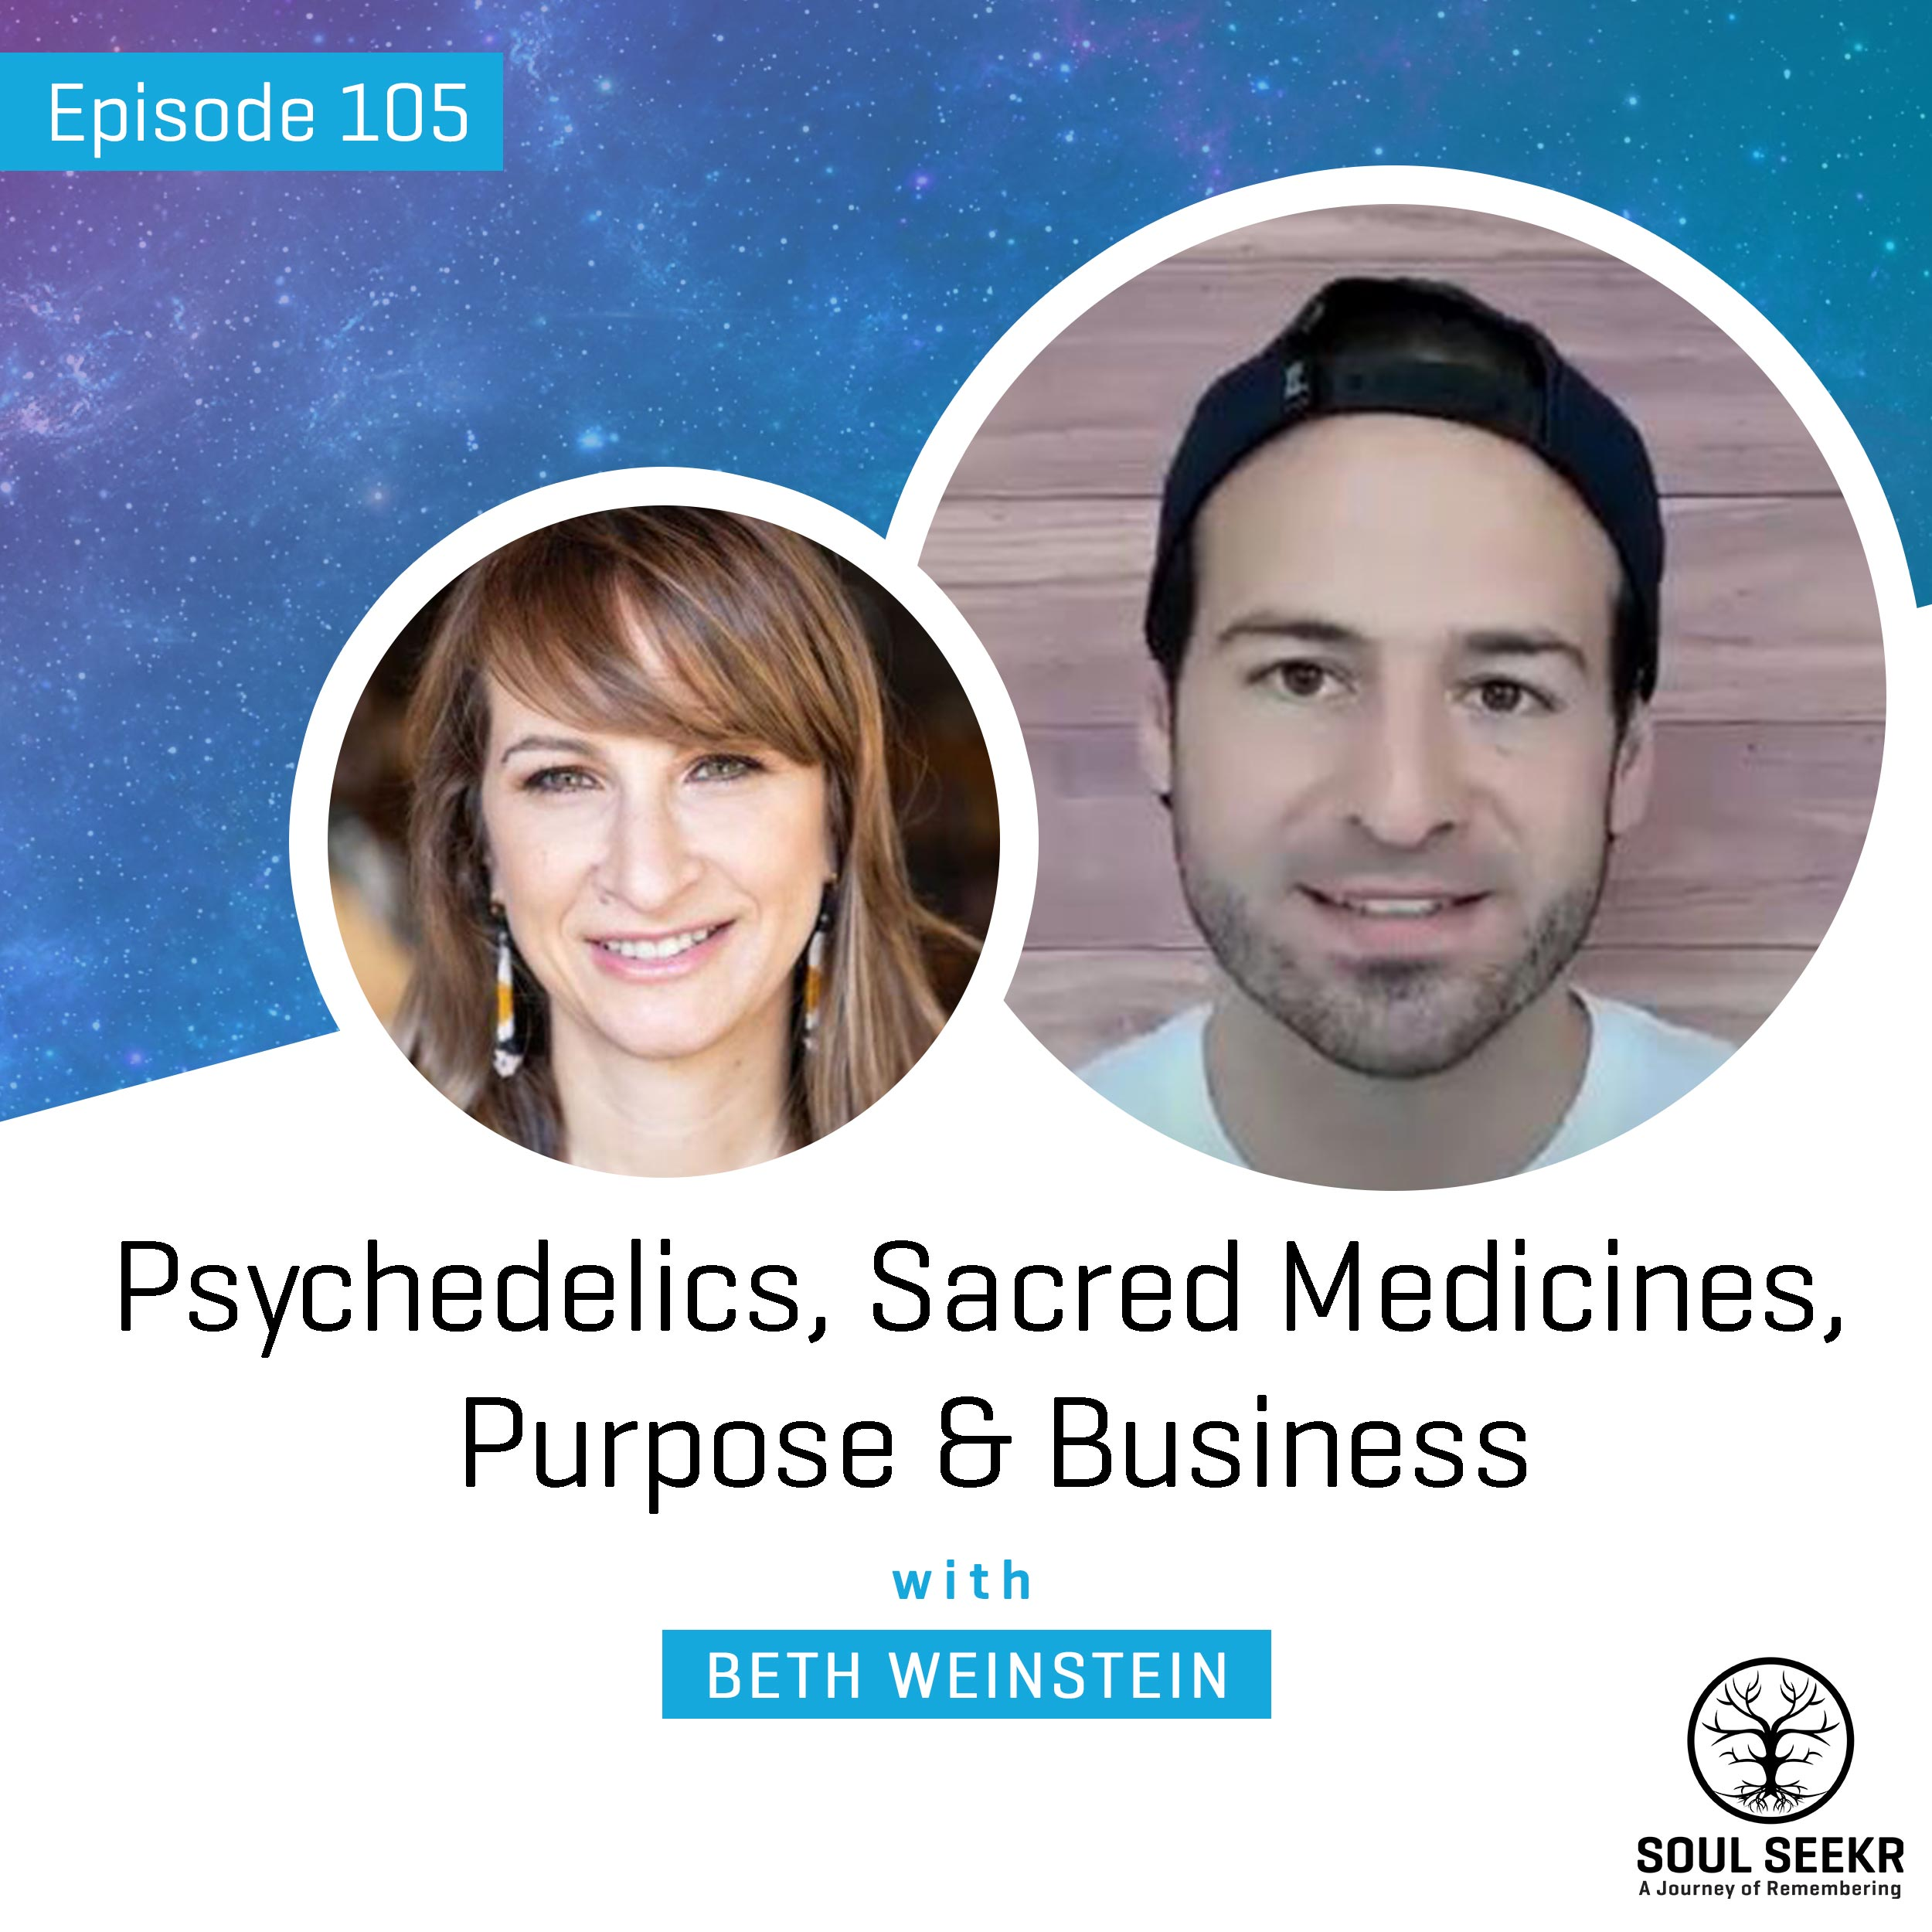 #105: Psychedelics, Sacred Medicines, Purpose & Business with Beth Weinstein